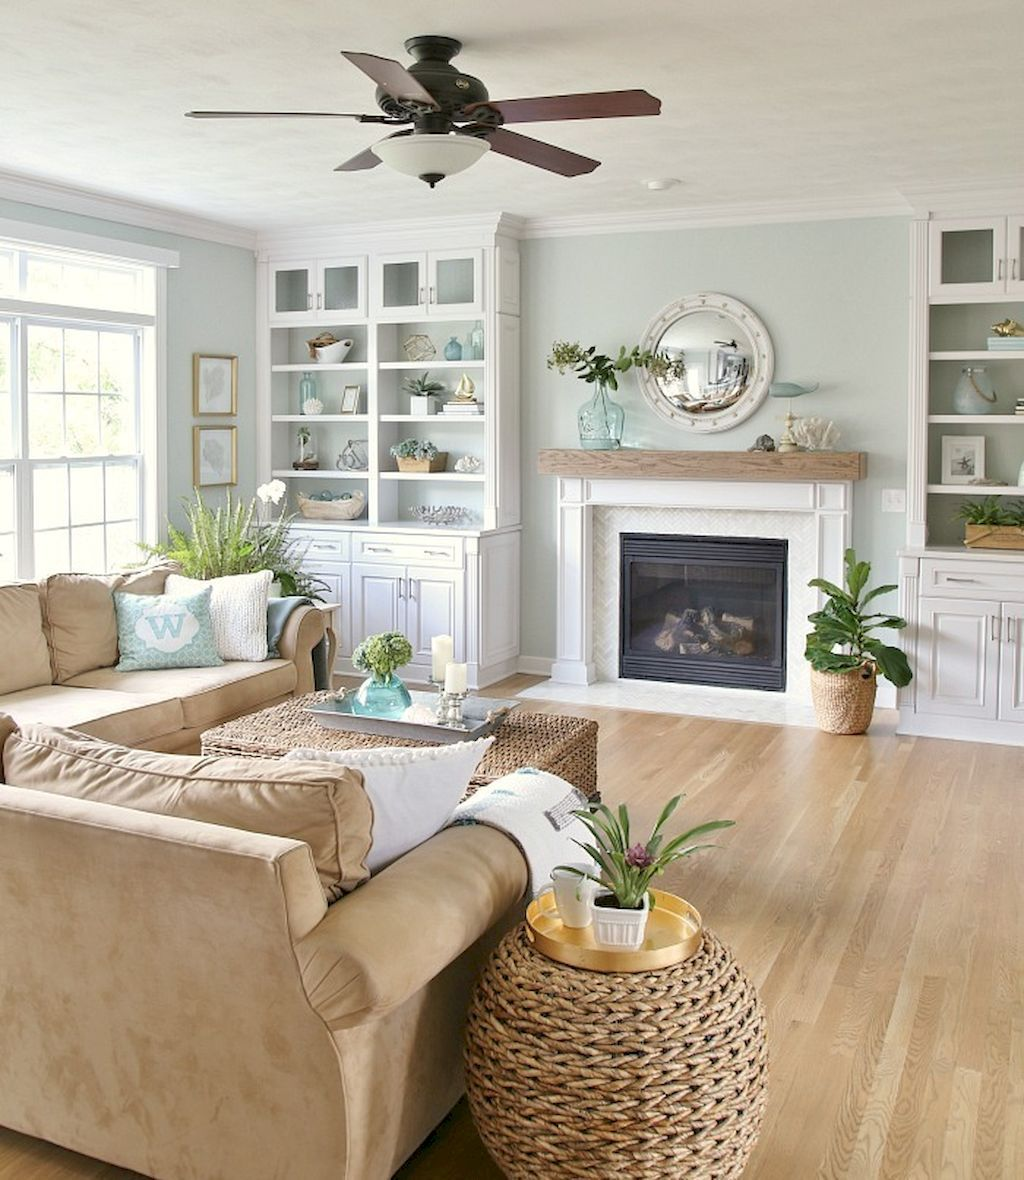 Wonderful coastal living room design & decor ideas (28) - HomeSpecially #coastallivingrooms